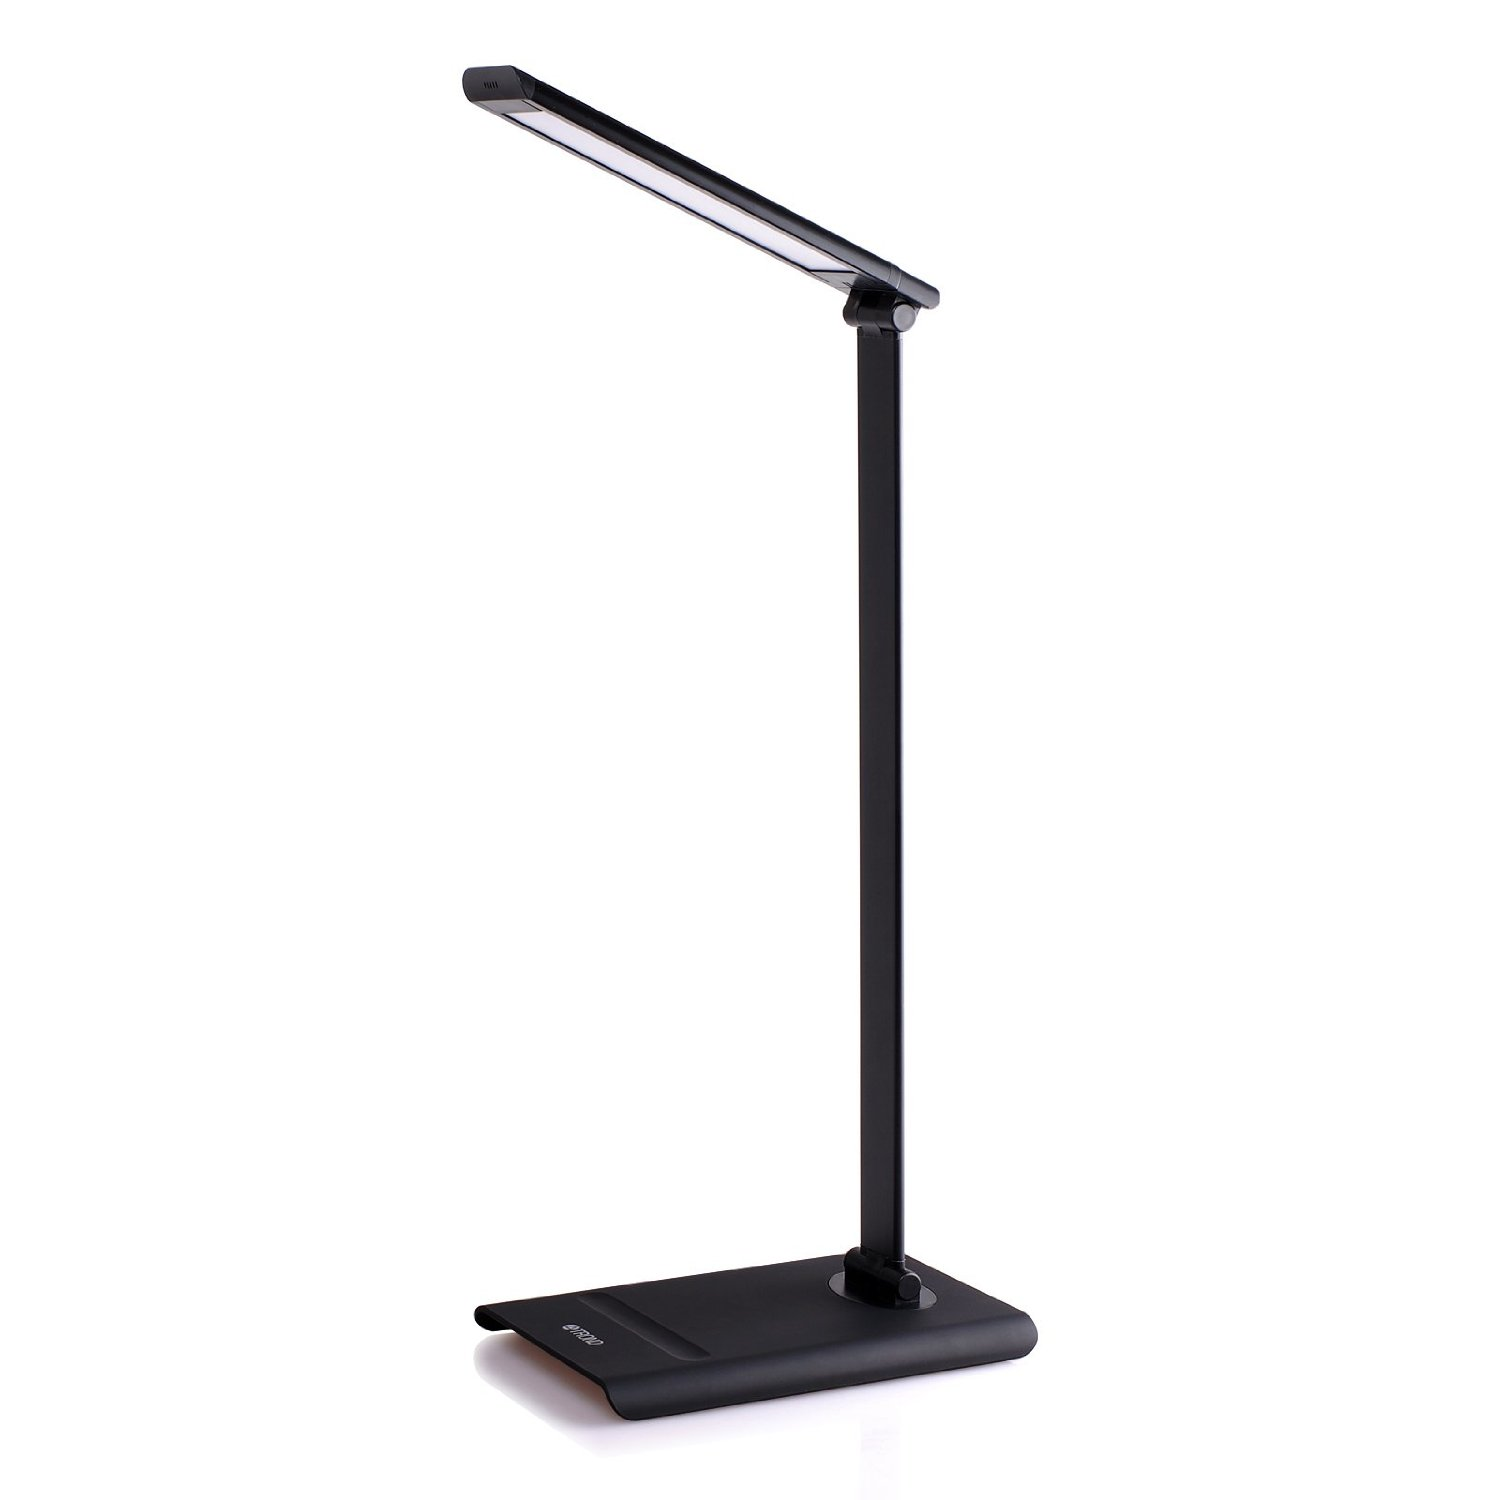 [2015 Model] TROND Halo Dimmable Eye-Care LED Desk Lamp